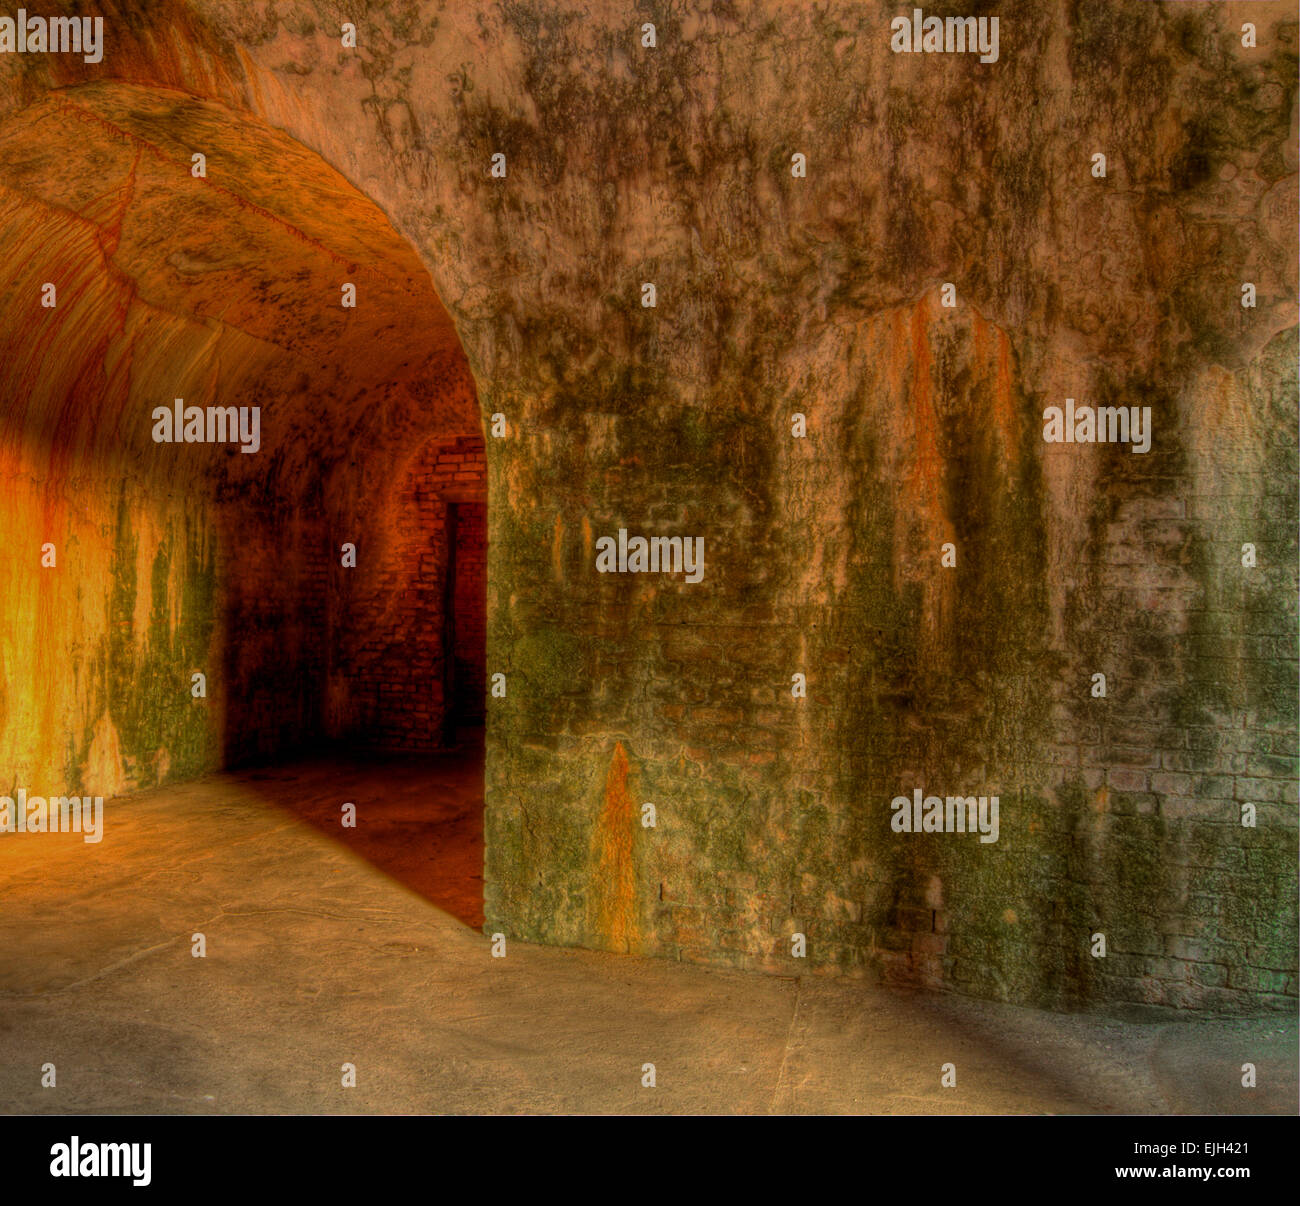 A broad foreboding tunnel. - Stock Image